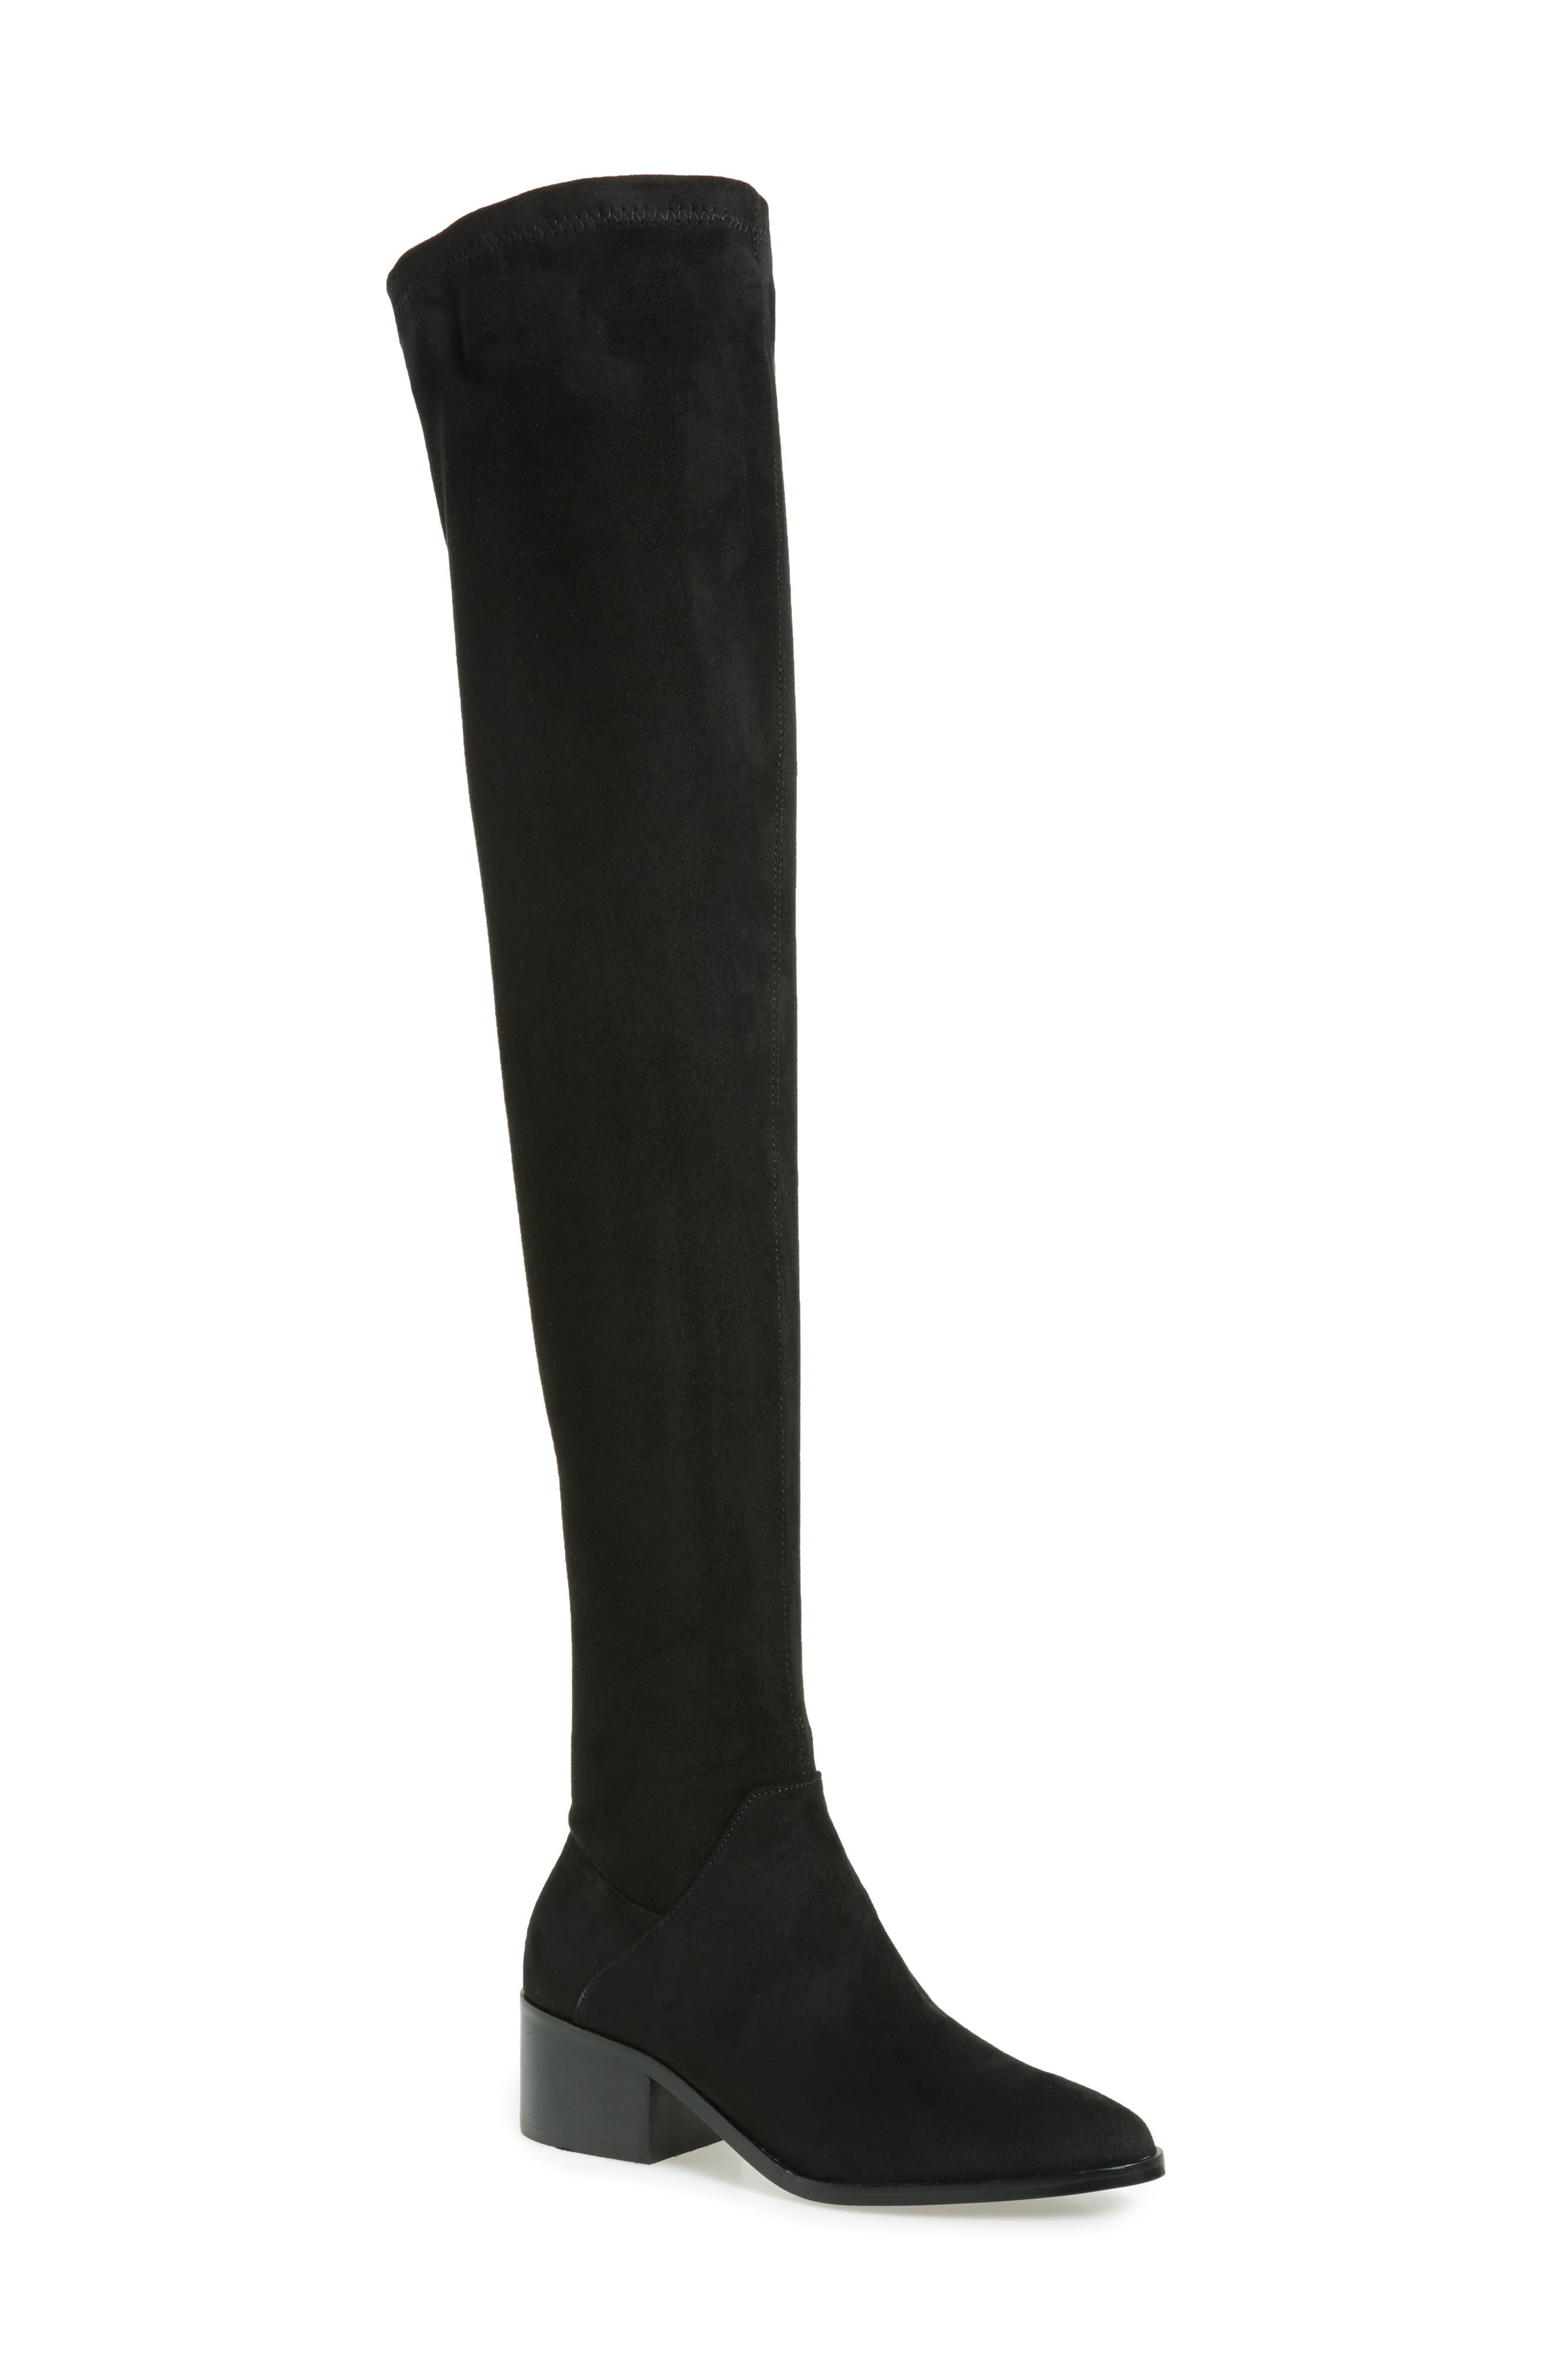 STEVE MADDEN,                             Gabriana Stretch Over the Knee Boot,                             Main thumbnail 1, color,                             001